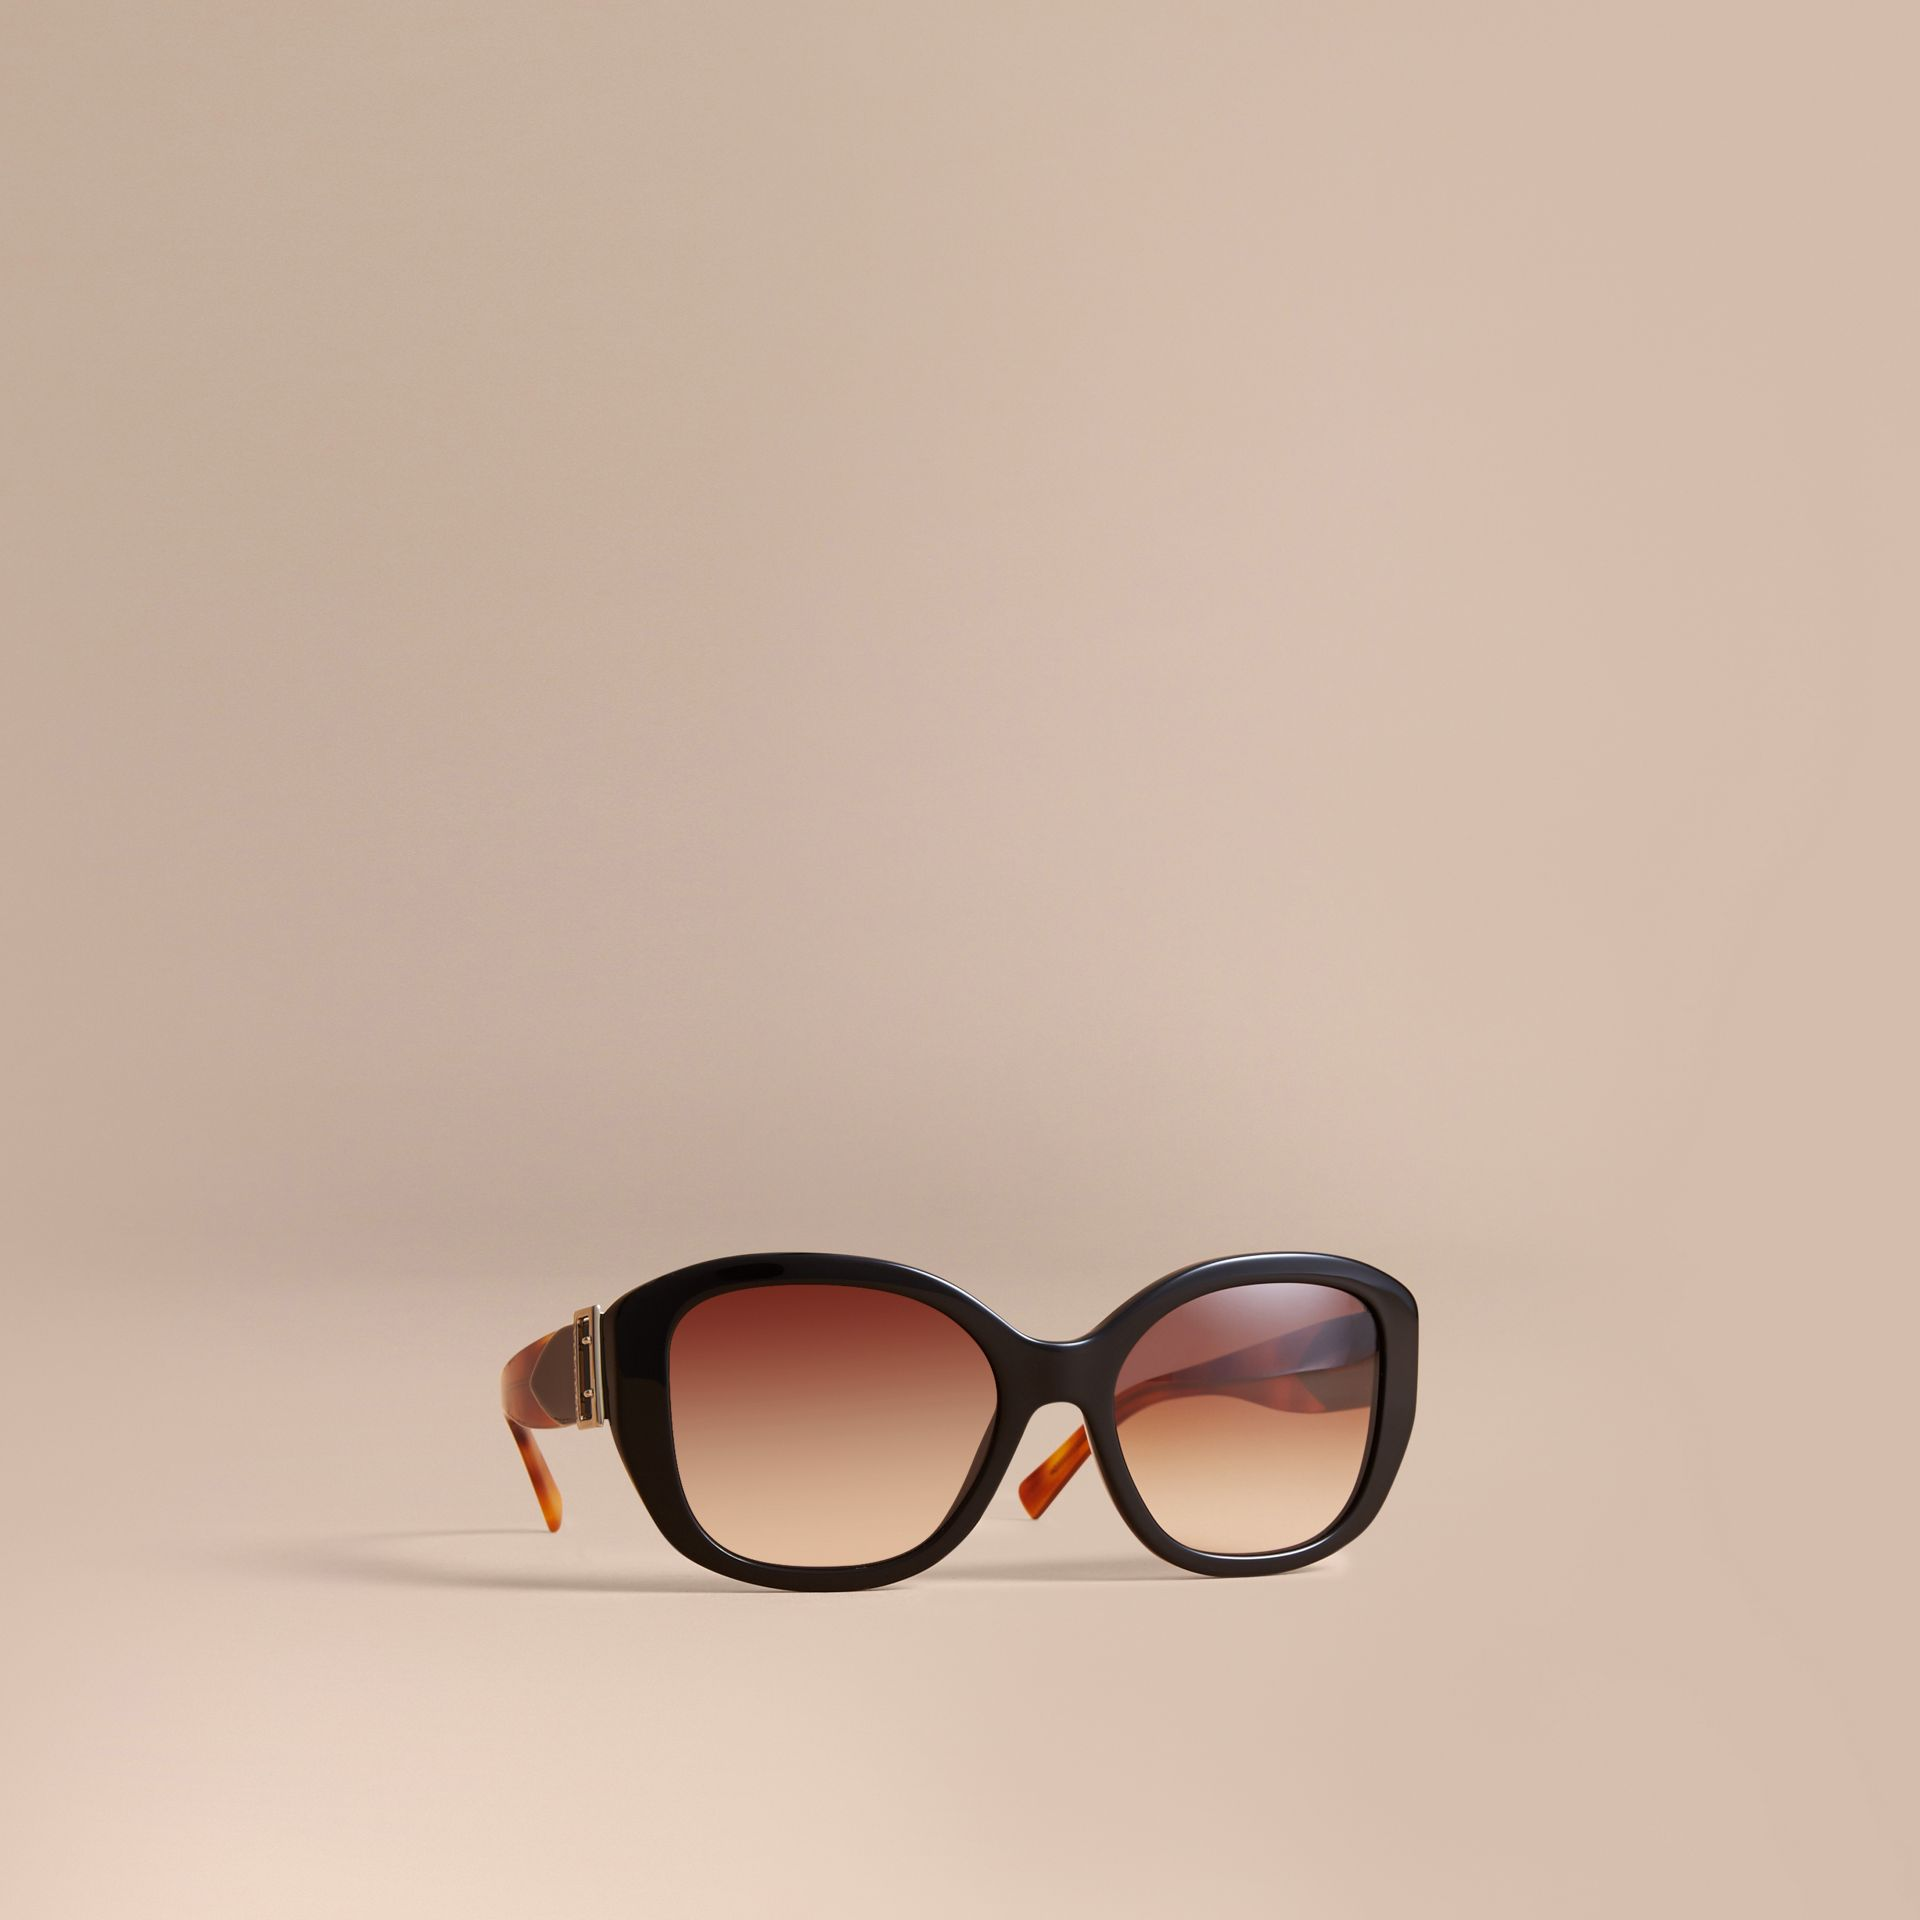 Buckle Detail Oversize Square Frame Sunglasses in Black - Women | Burberry - gallery image 0